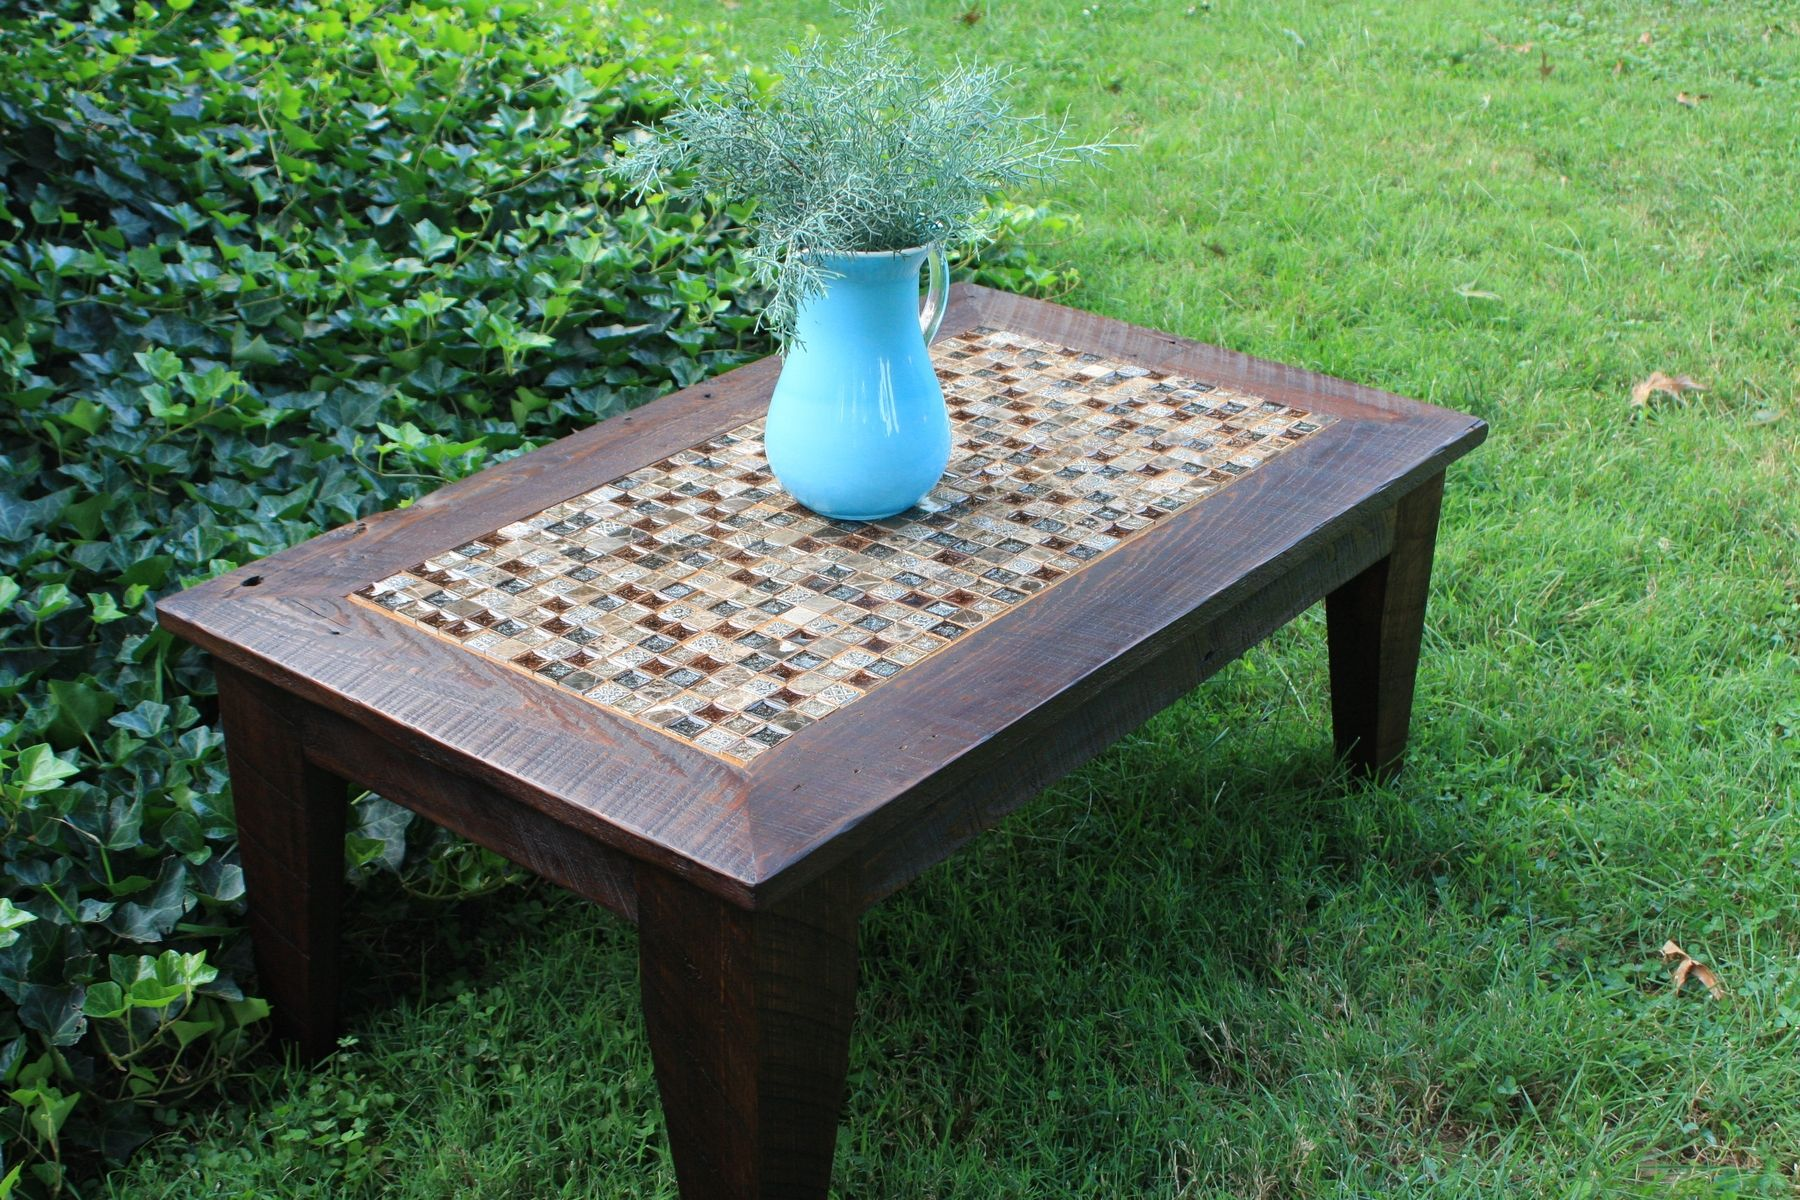 hand made coffee table glass stone tile mosaic reclaimed wood outdoor accent custom rustic contemporary slim mirror small blue lamp deck umbrella chests and consoles furniture